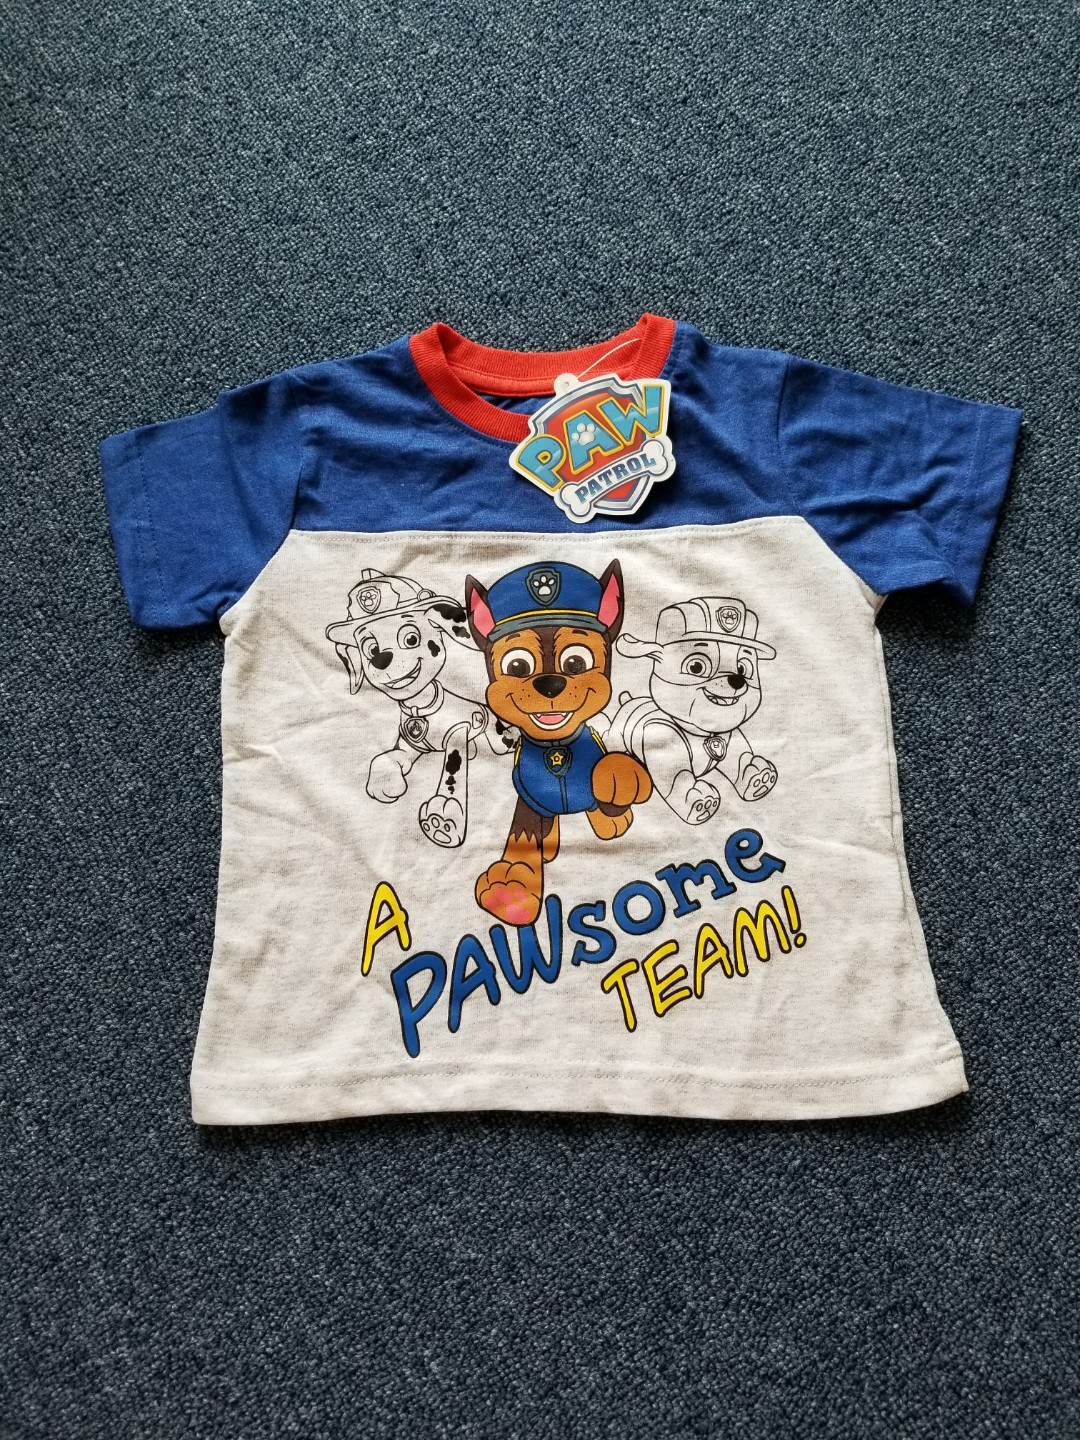 afe11e764 Paw Patrol shirt 2T, Babies & Kids, Boys' Apparel, 1 to 3 Years on ...